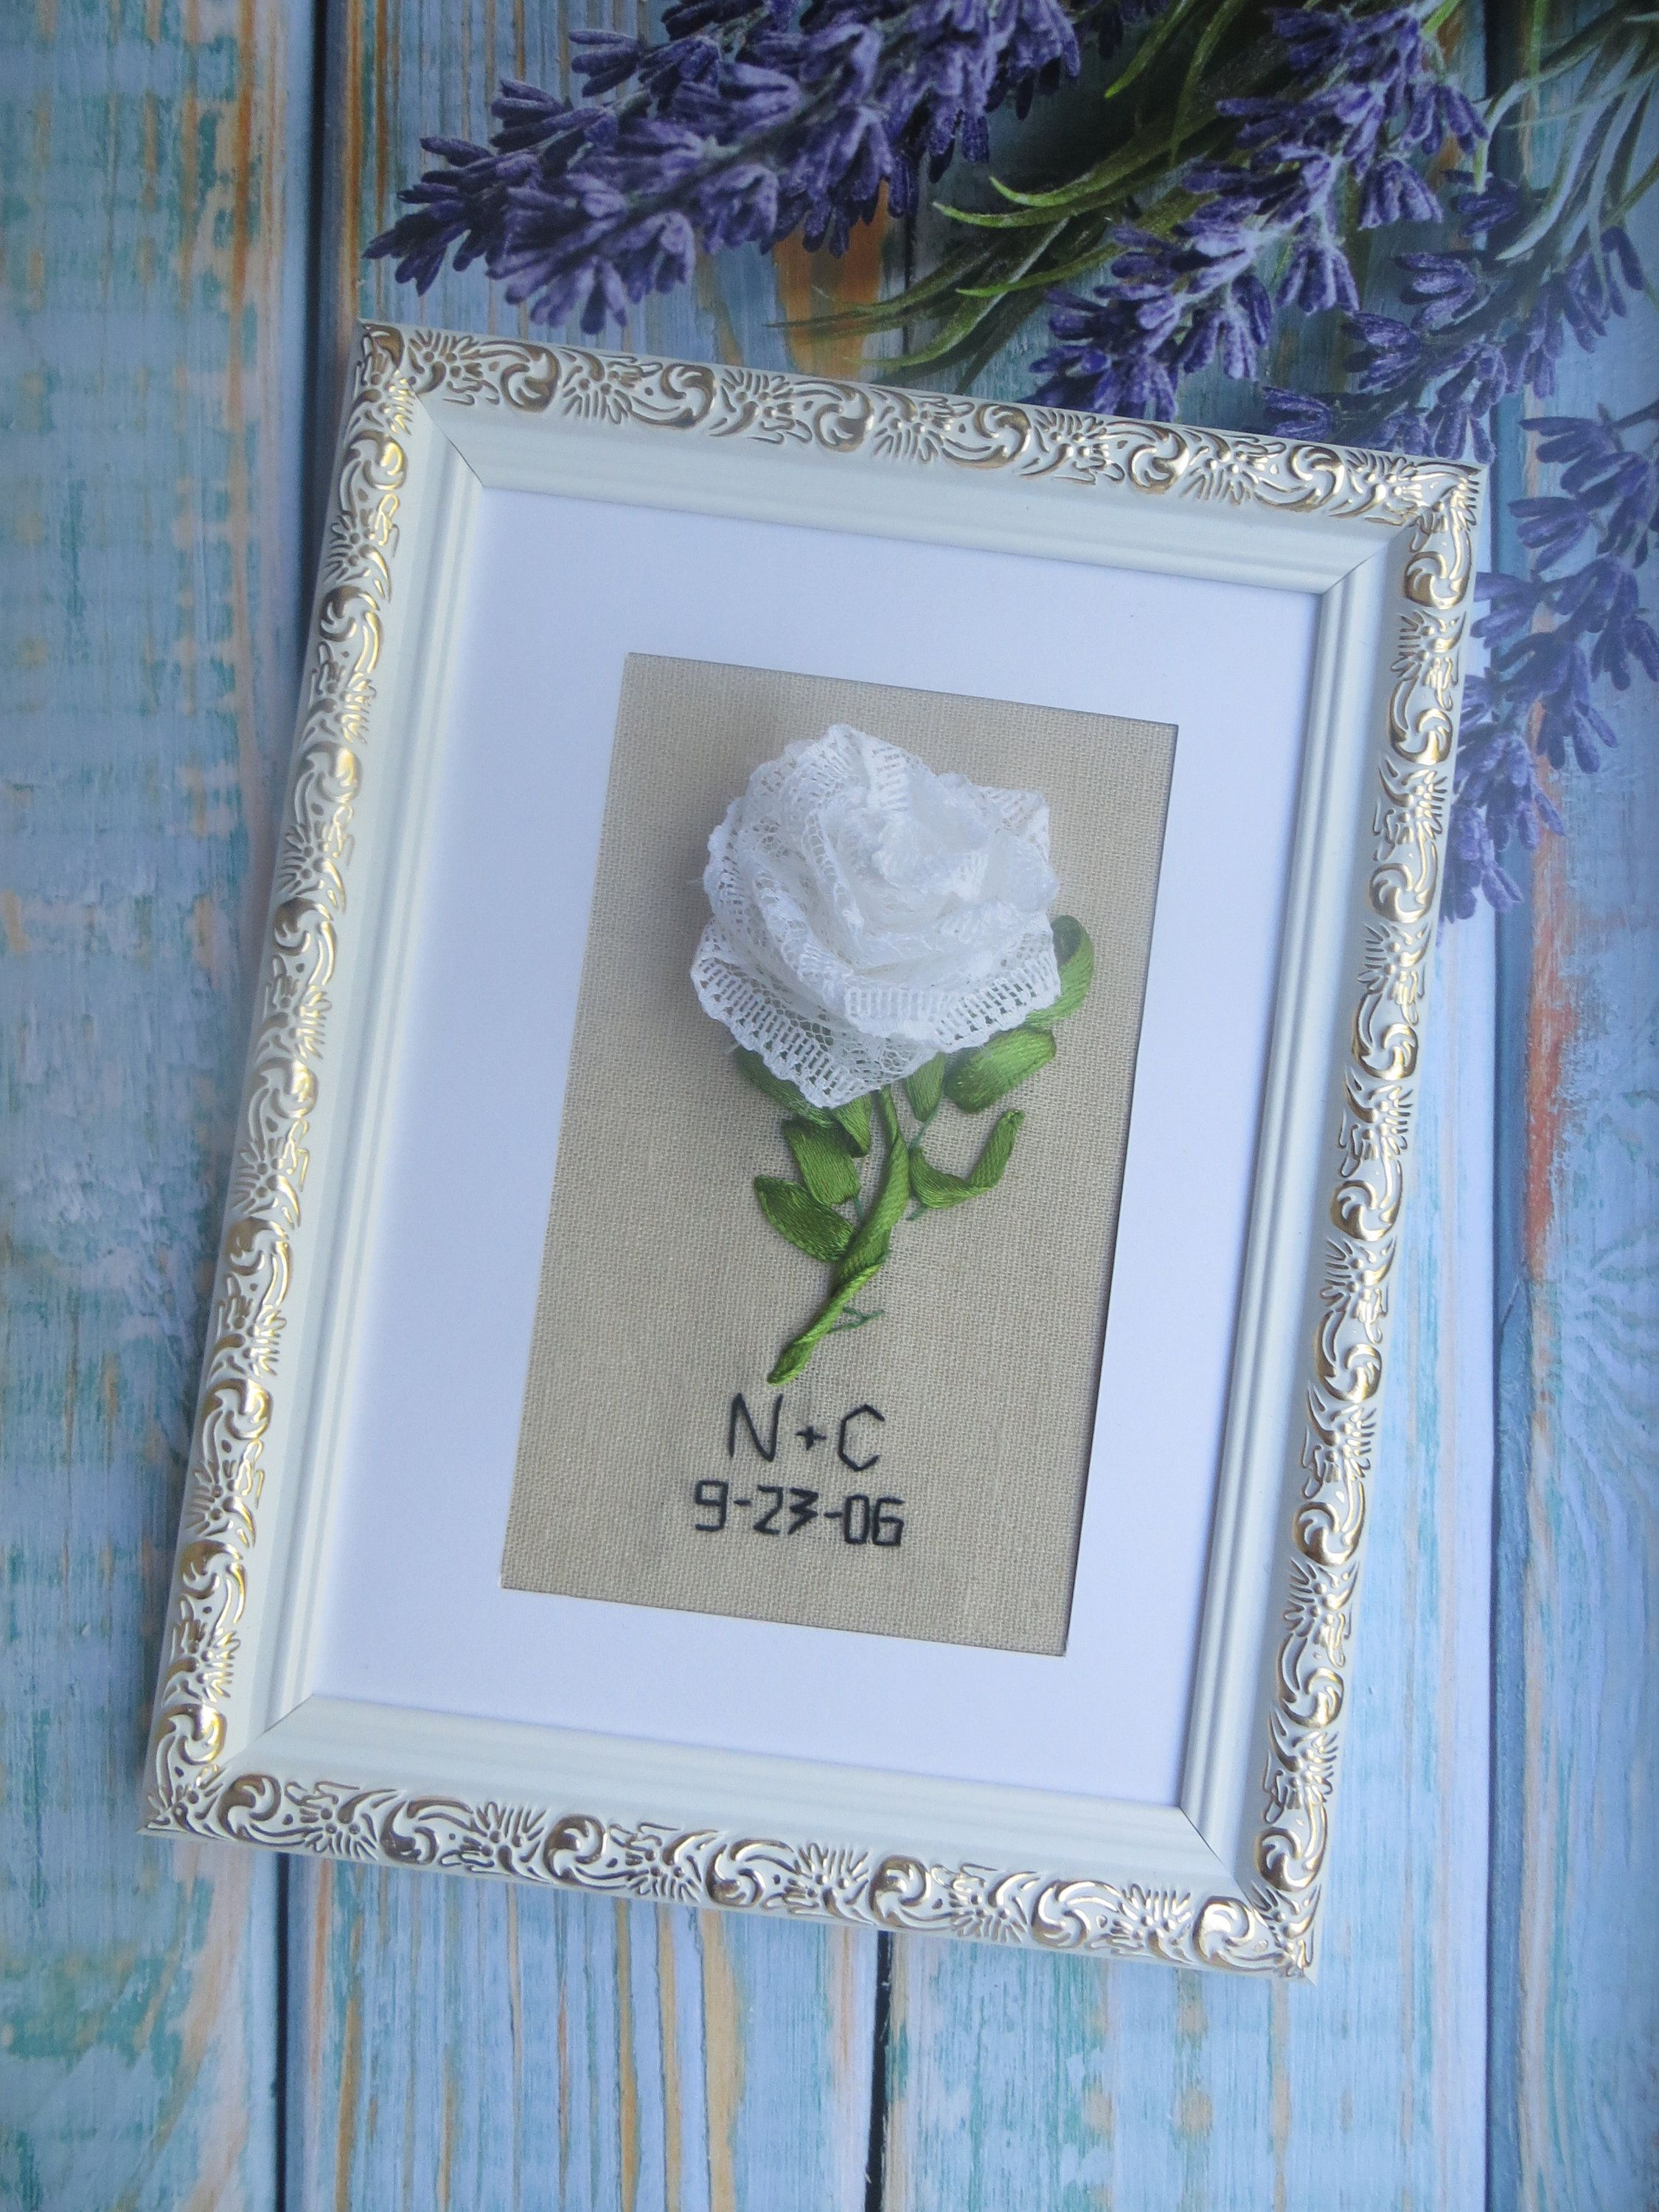 4th 12th 13th anniversary gift him men lace linen